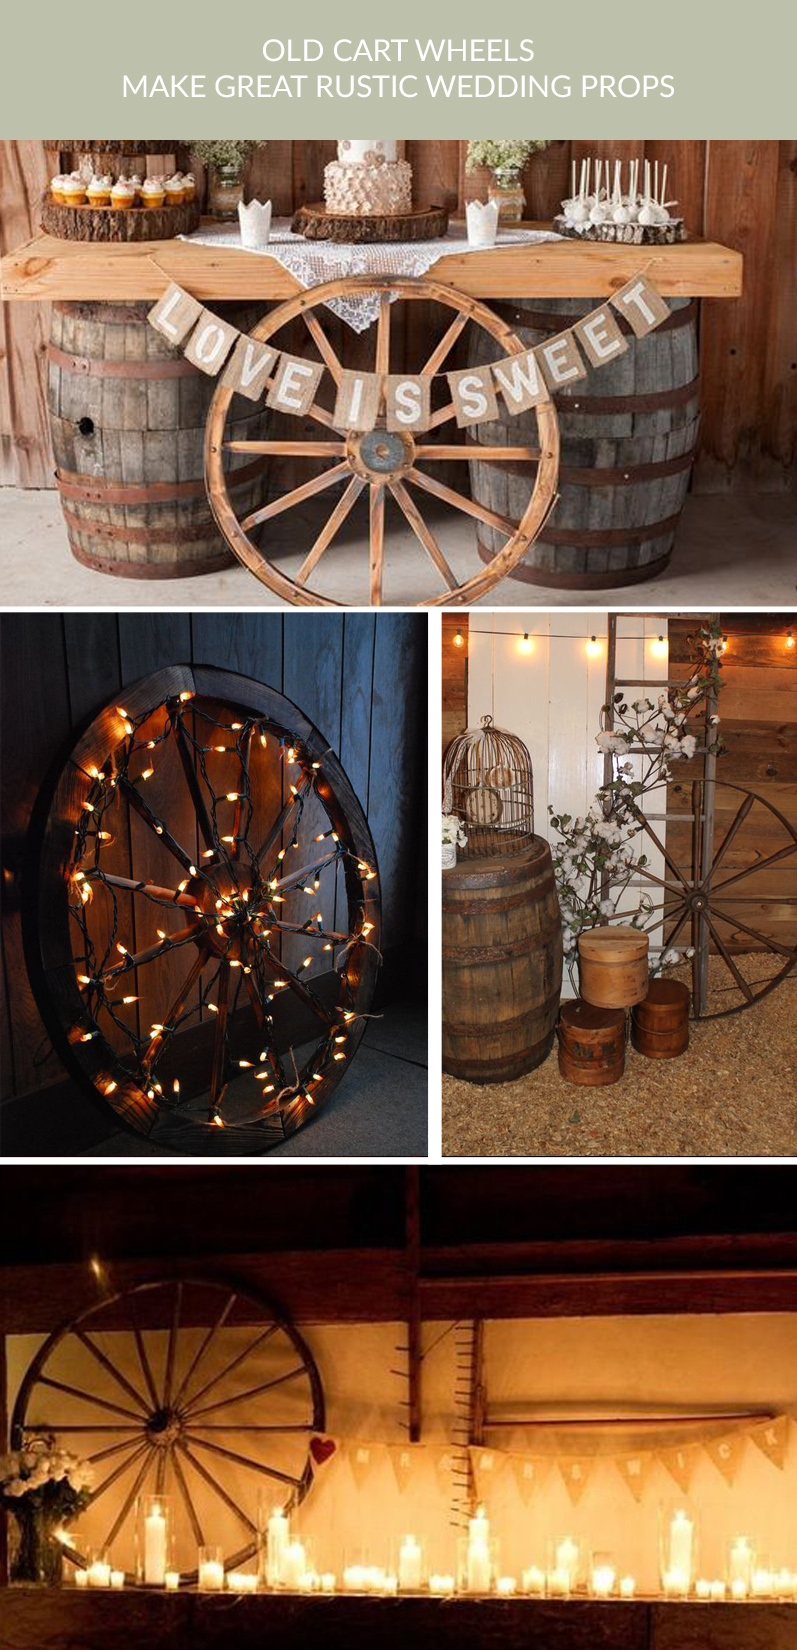 old cart wheels rustic wedding props buy rustic cart wheels The Wedding of my Dreams